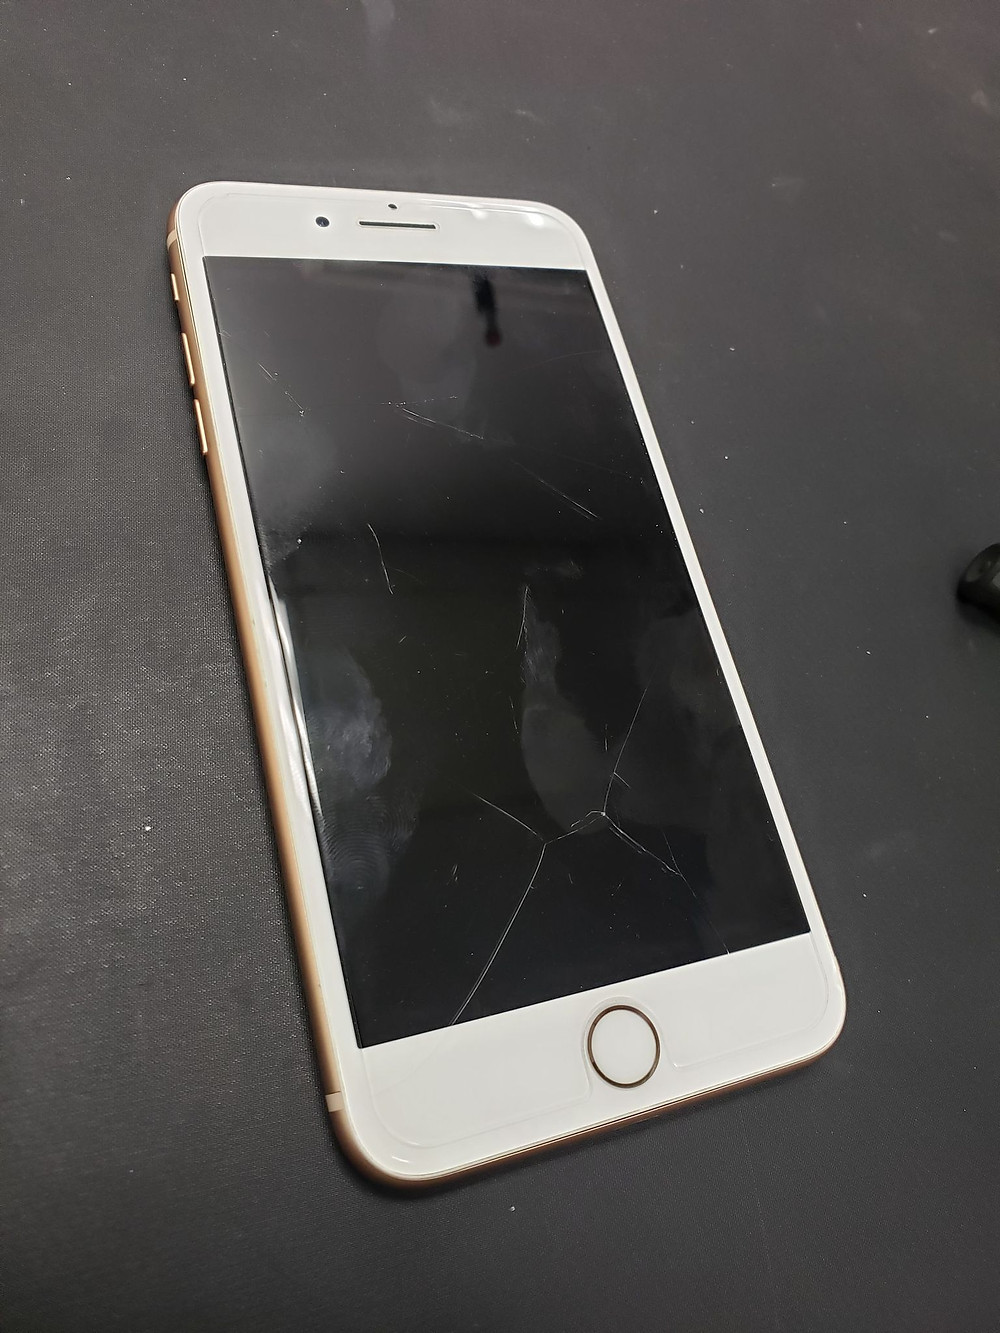 Dead iPhone in for Data Recovery